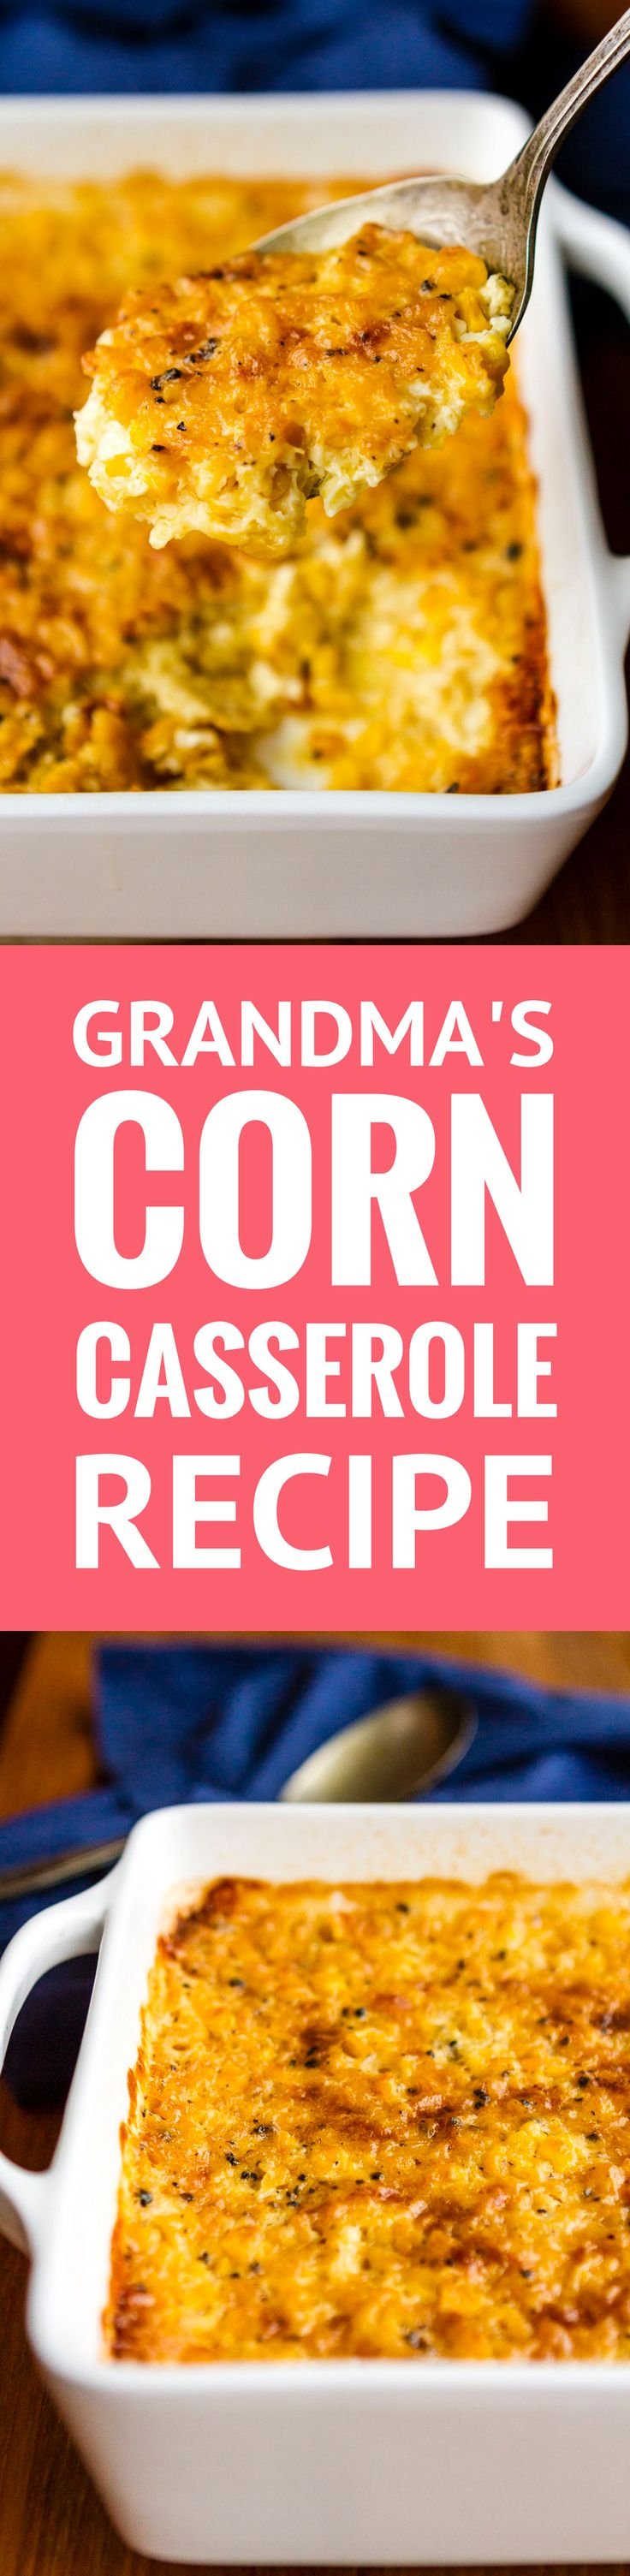 Corn Casserole Recipe -- Pinned over 250,000 times! This creamed corn casserole recipe is SO good you'll want to scrape the dish completely clean to get every last bit of caramelized goodness from the corners! It's on the menu for every family gathering I http://www.ground-based.com/blogs/recipes